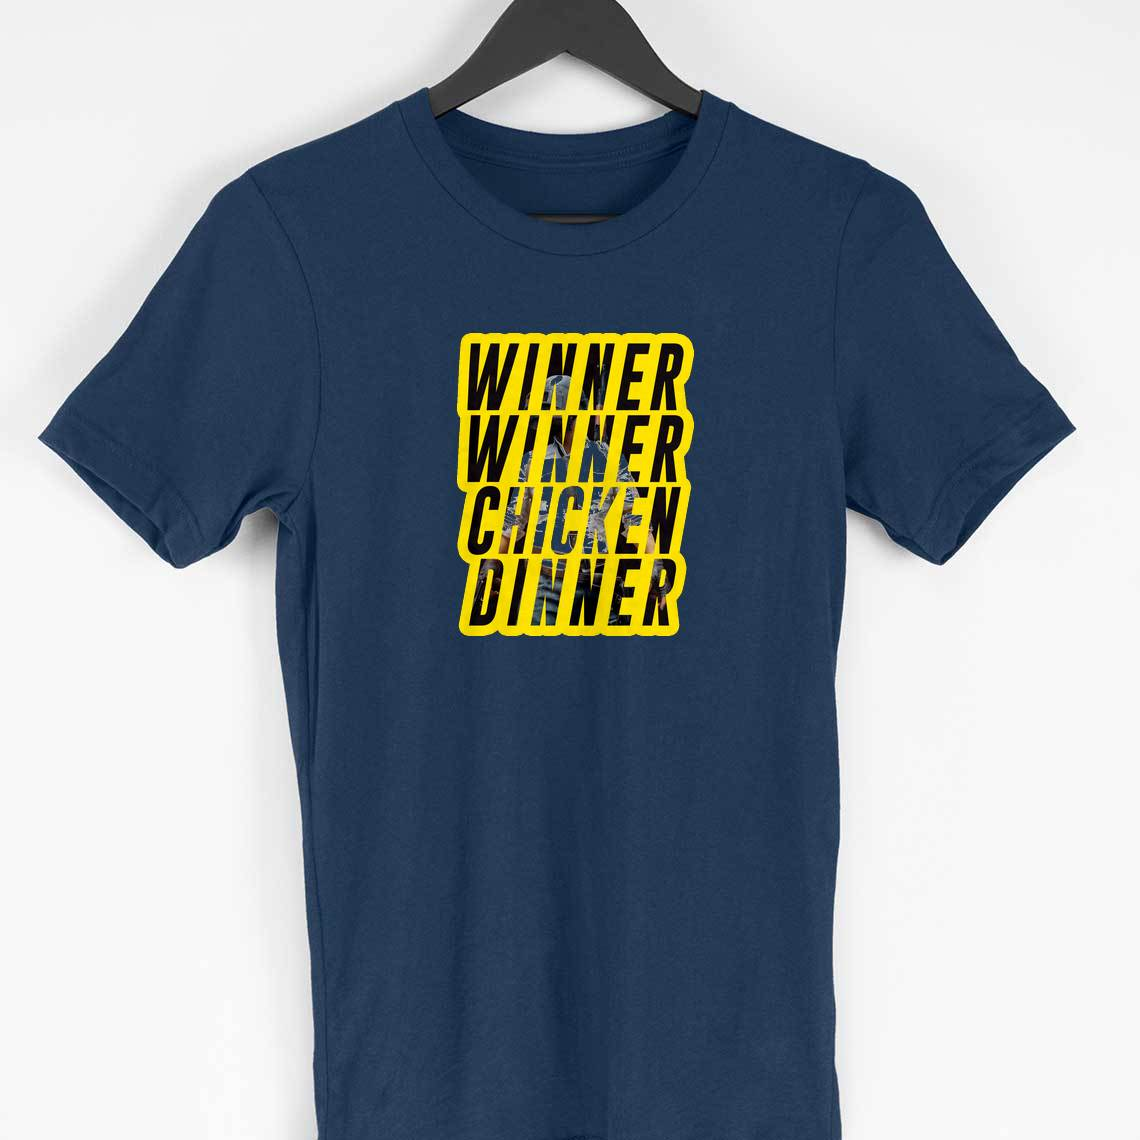 Winner Winner Chicken Dinner T-shirt (Blue)